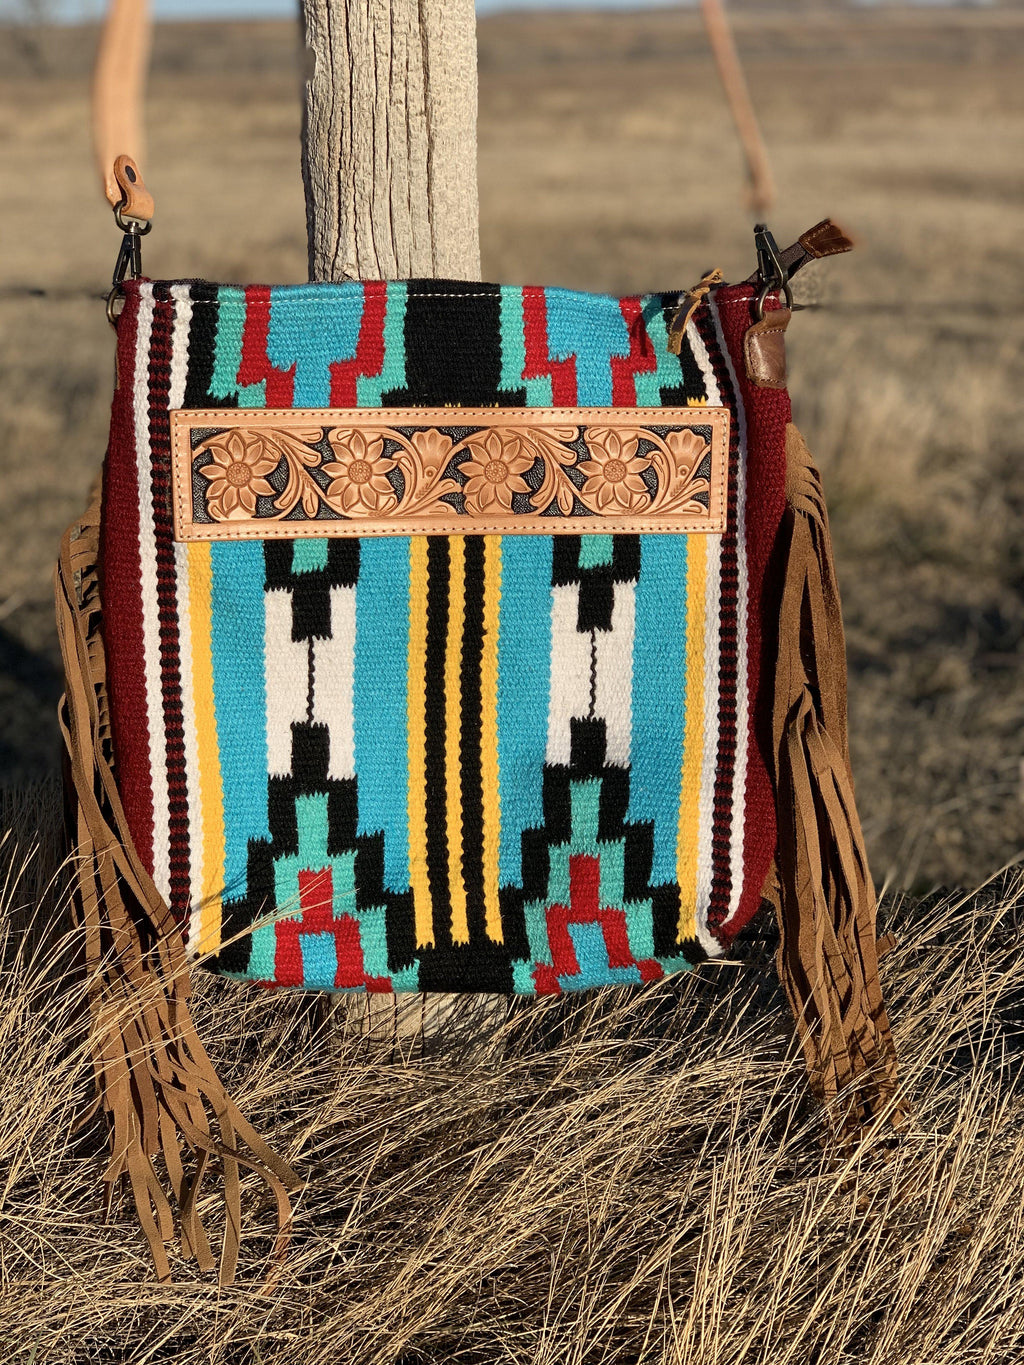 The Fringed Bandero Saddle Blanket Bag